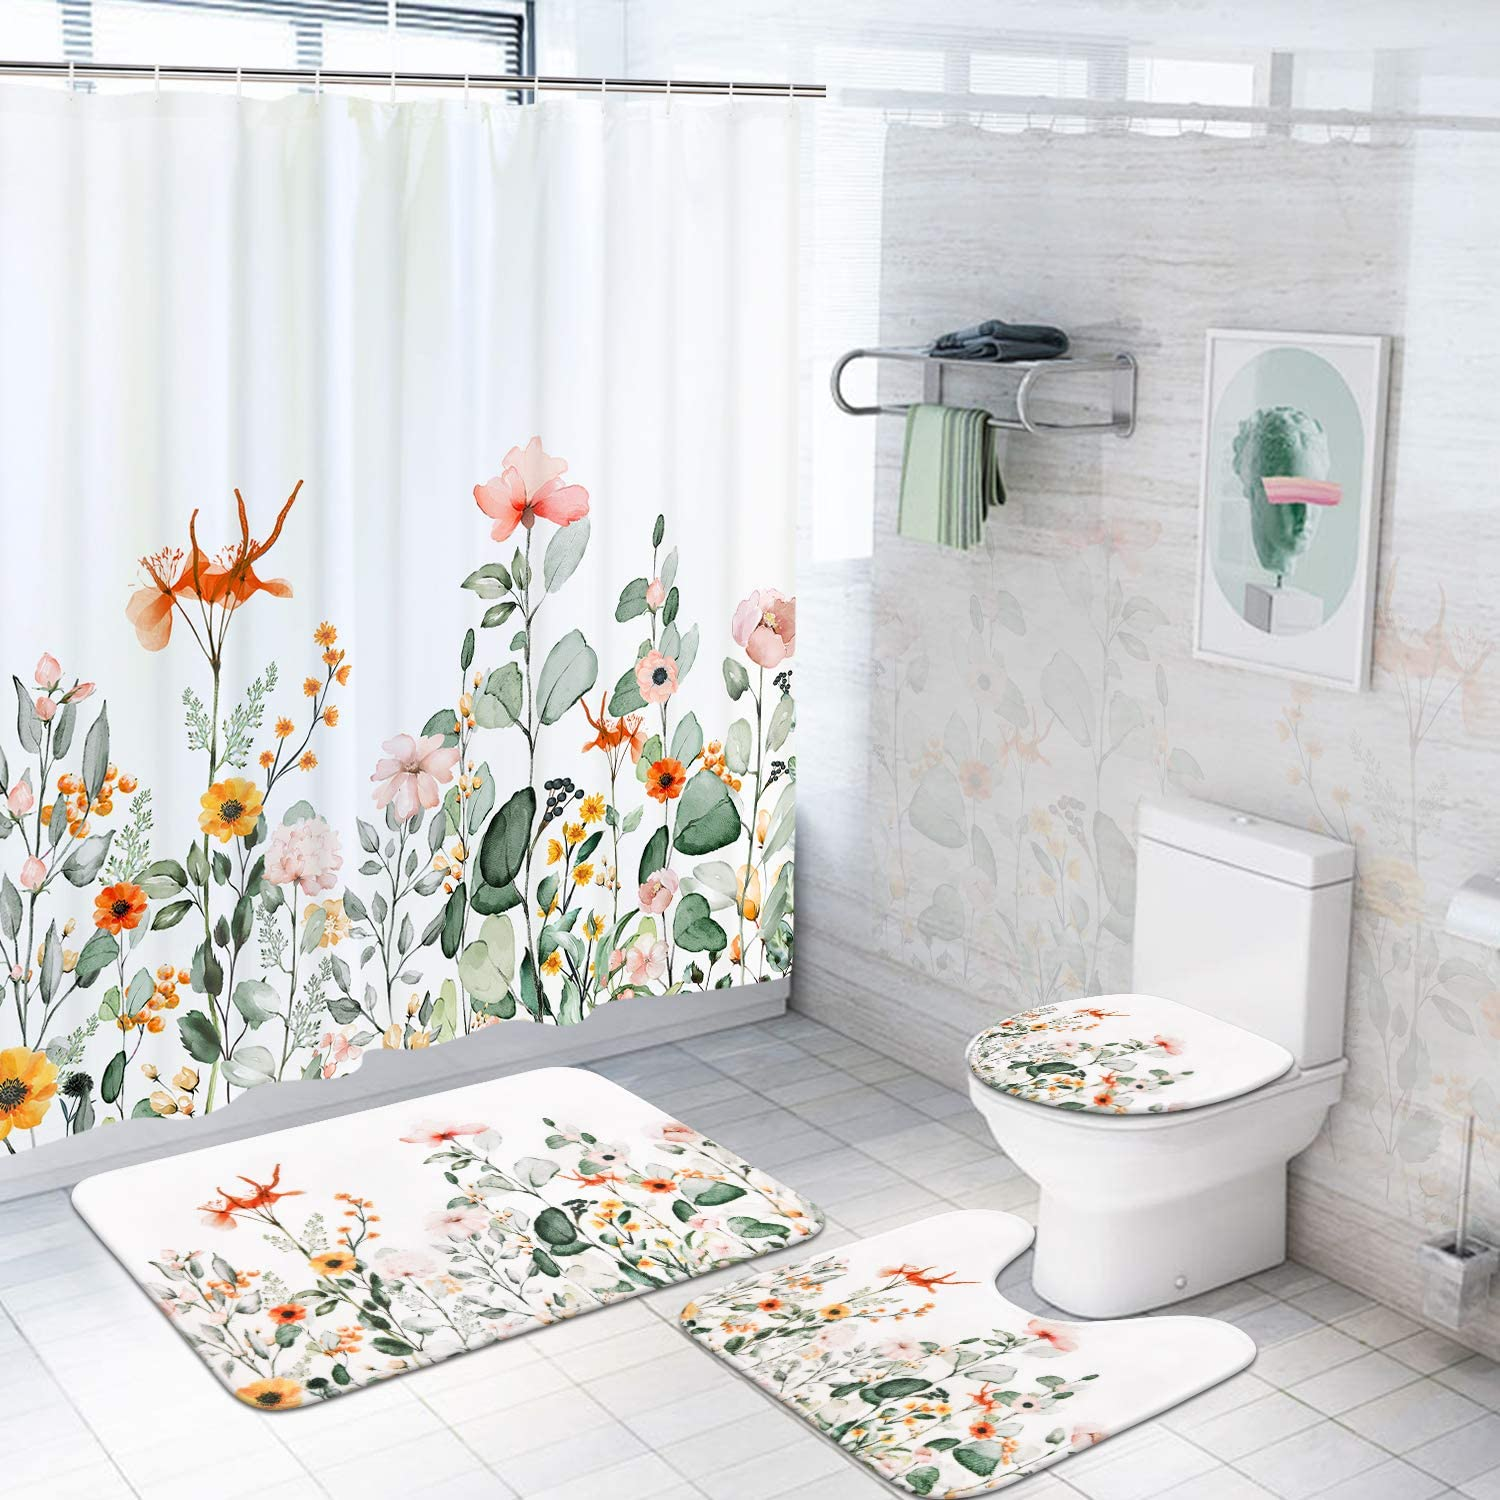 Pknoclan 4 Pcs Boho Floral Shower Curtain Set with Non-Slip Rugs, Toilet Lid Cover and Bath Mat, Plants Colorful Flowers Shower Curtain with 12 Hooks, Waterproof Watercolor Boho Bath Curtain